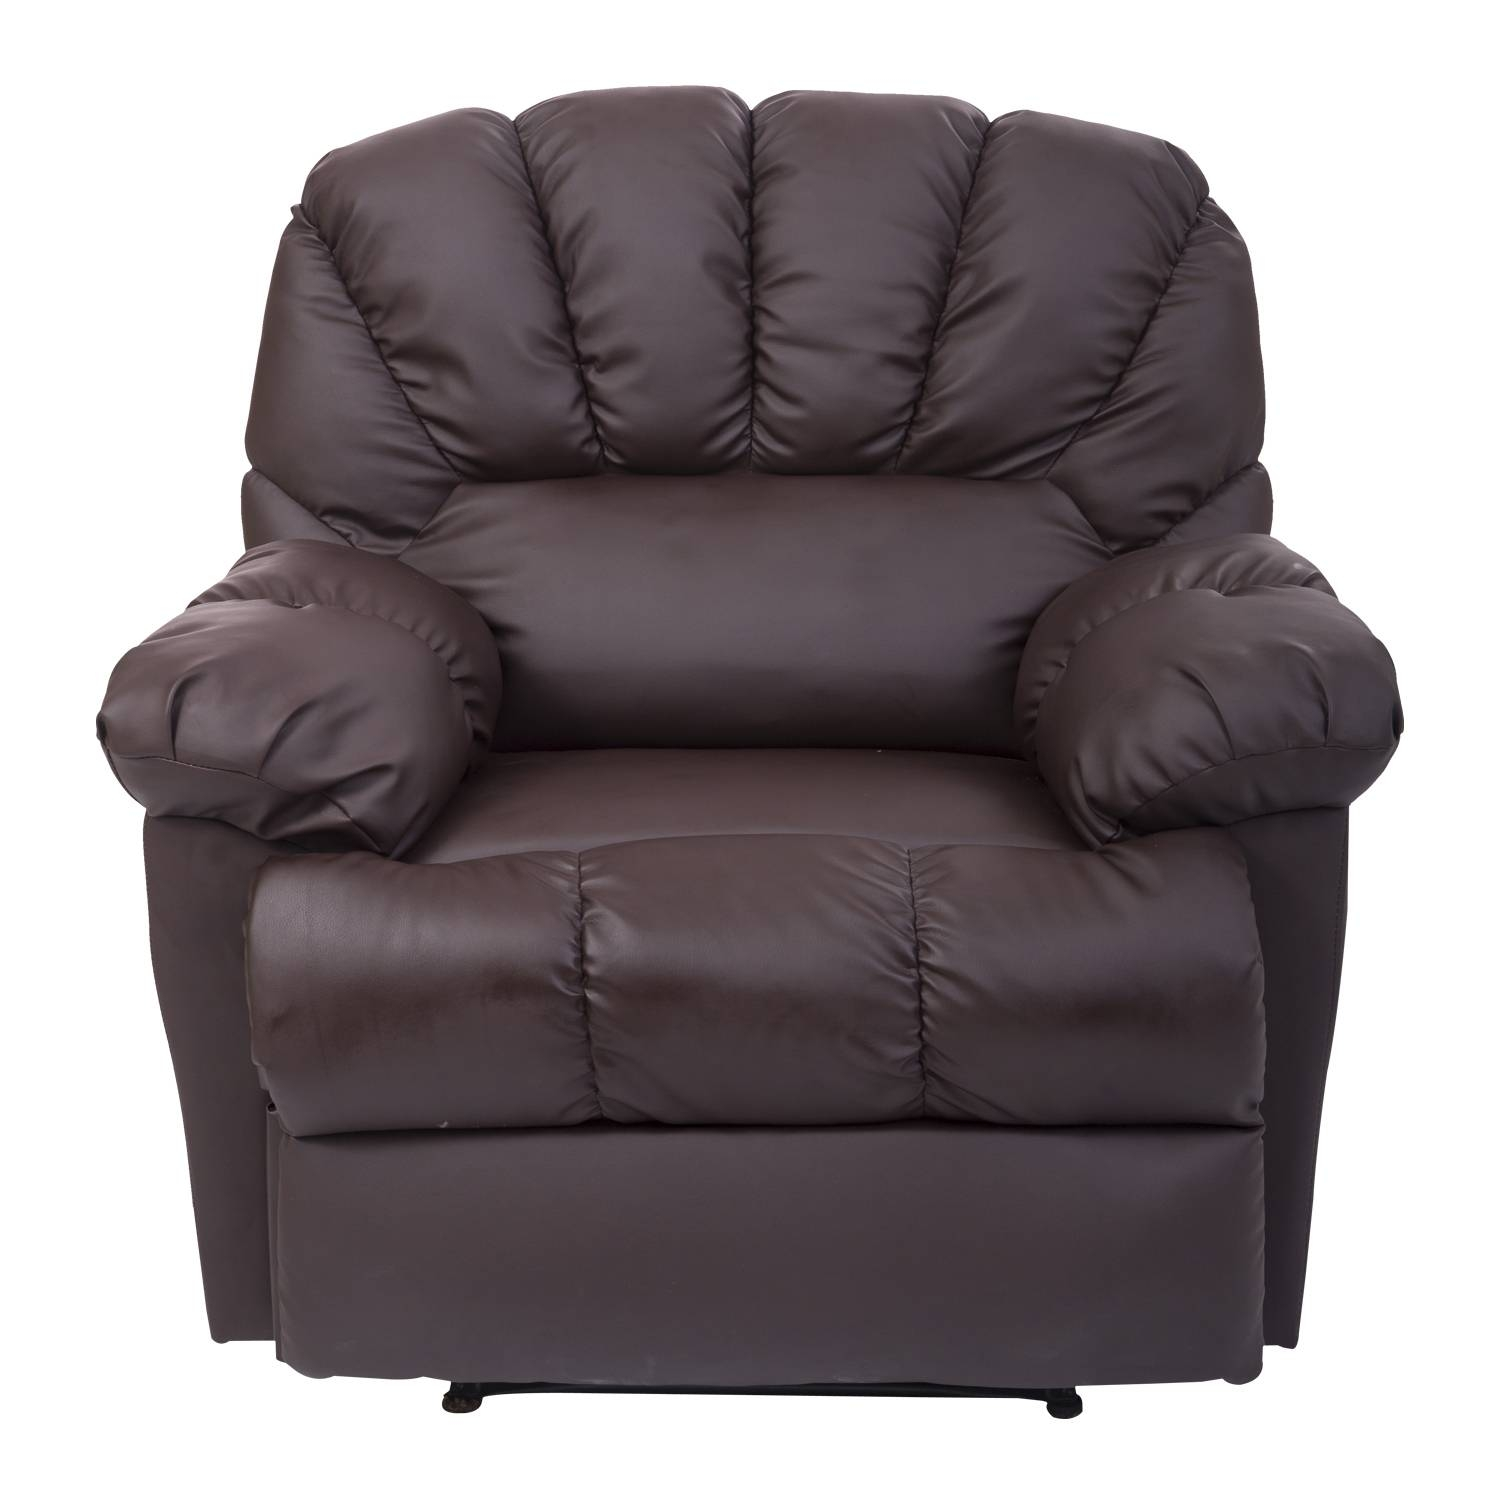 Homcom Pu Leather Vibrating Massage Sofa Chair Recliner - Brown intended for Sofa Chair Recliner (Image 15 of 30)